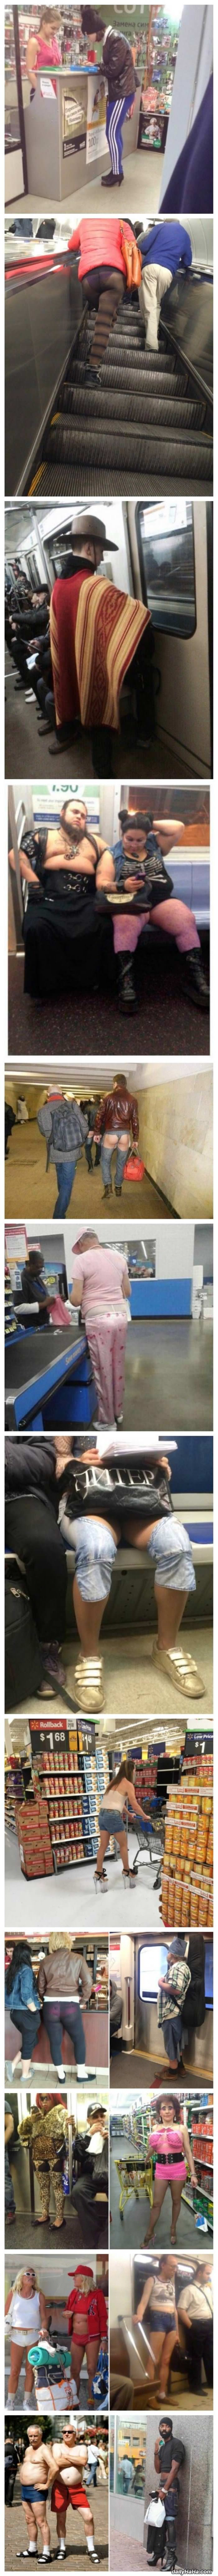 some strange fashion choices funny picture